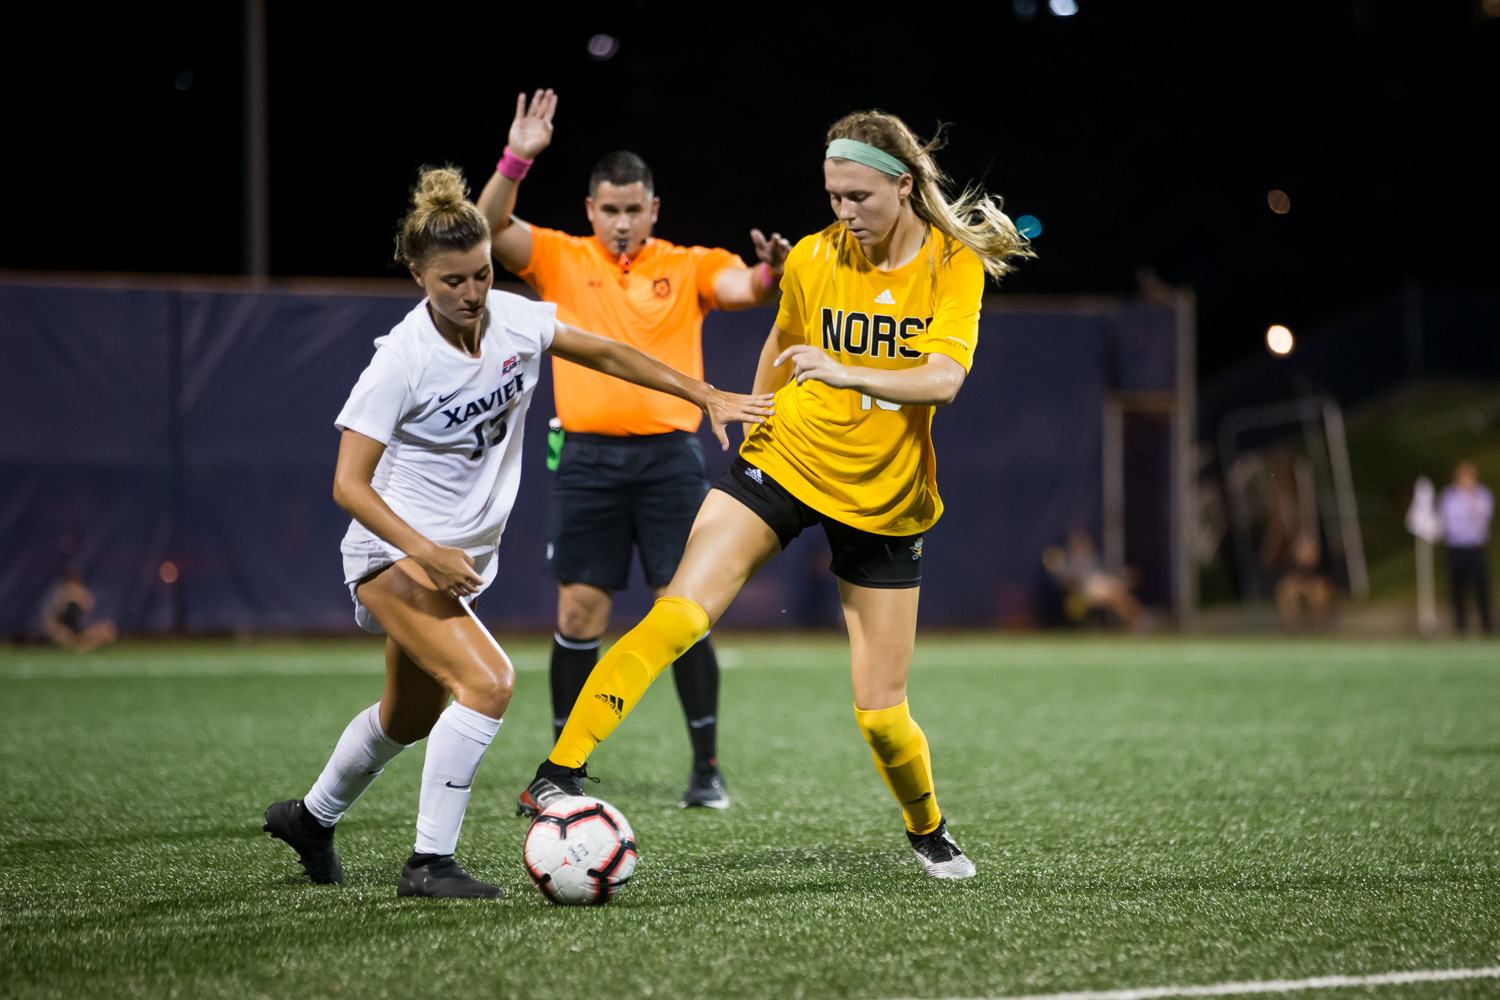 NKU ends nonconference schedule in loss to Xavier, 4-0